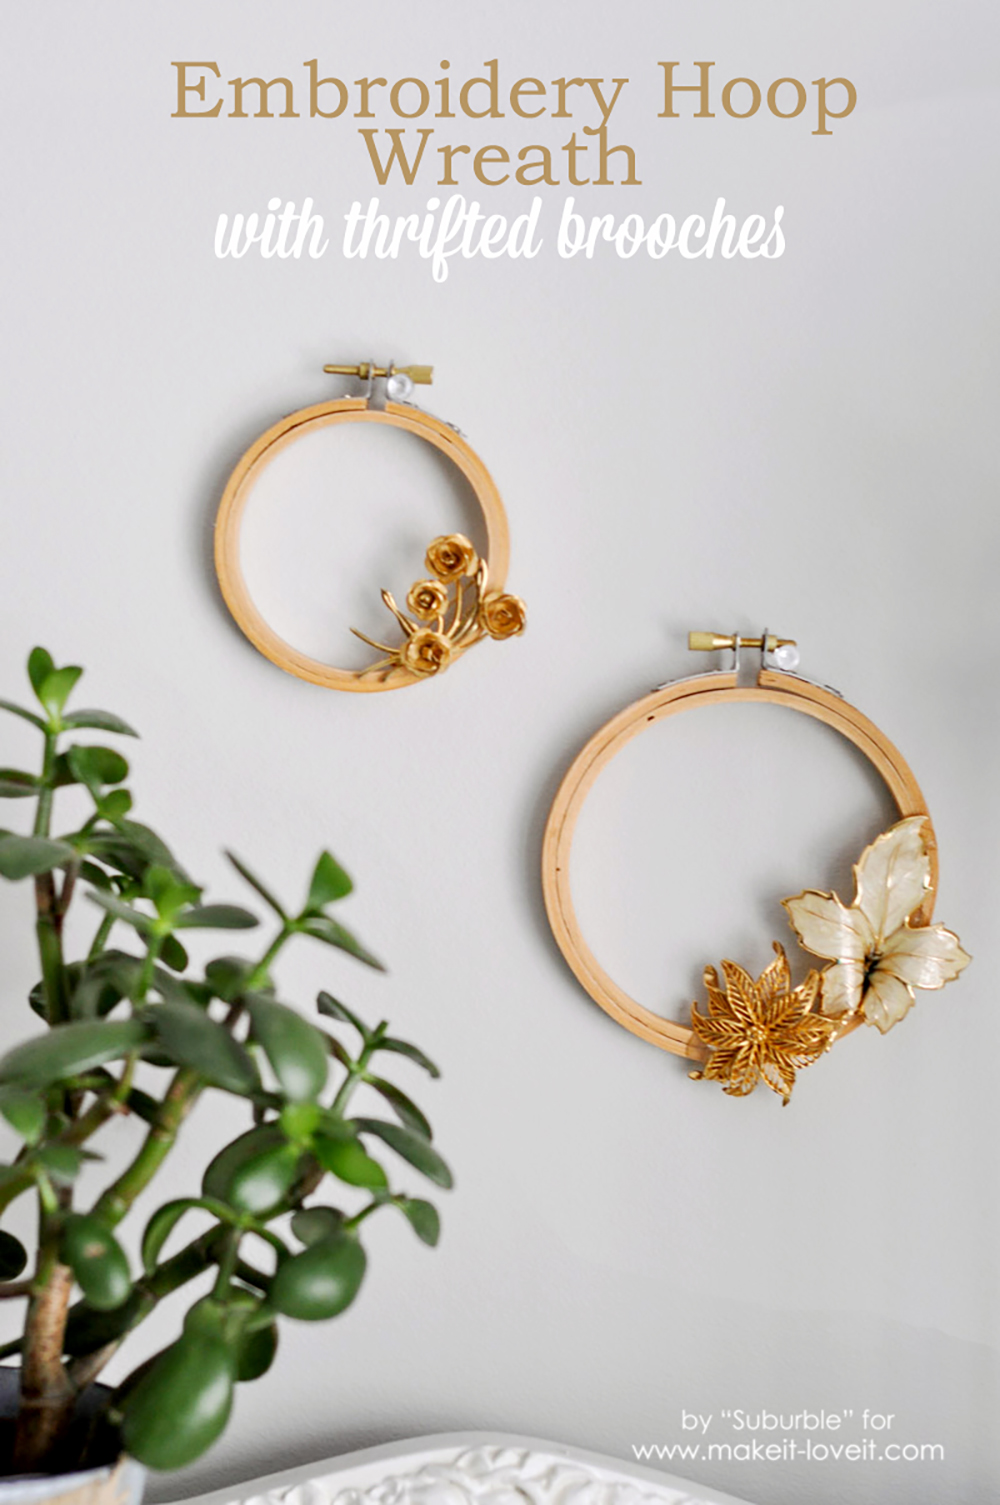 Embroidery Hoop Wreaths (…with Thrifted Brooches)